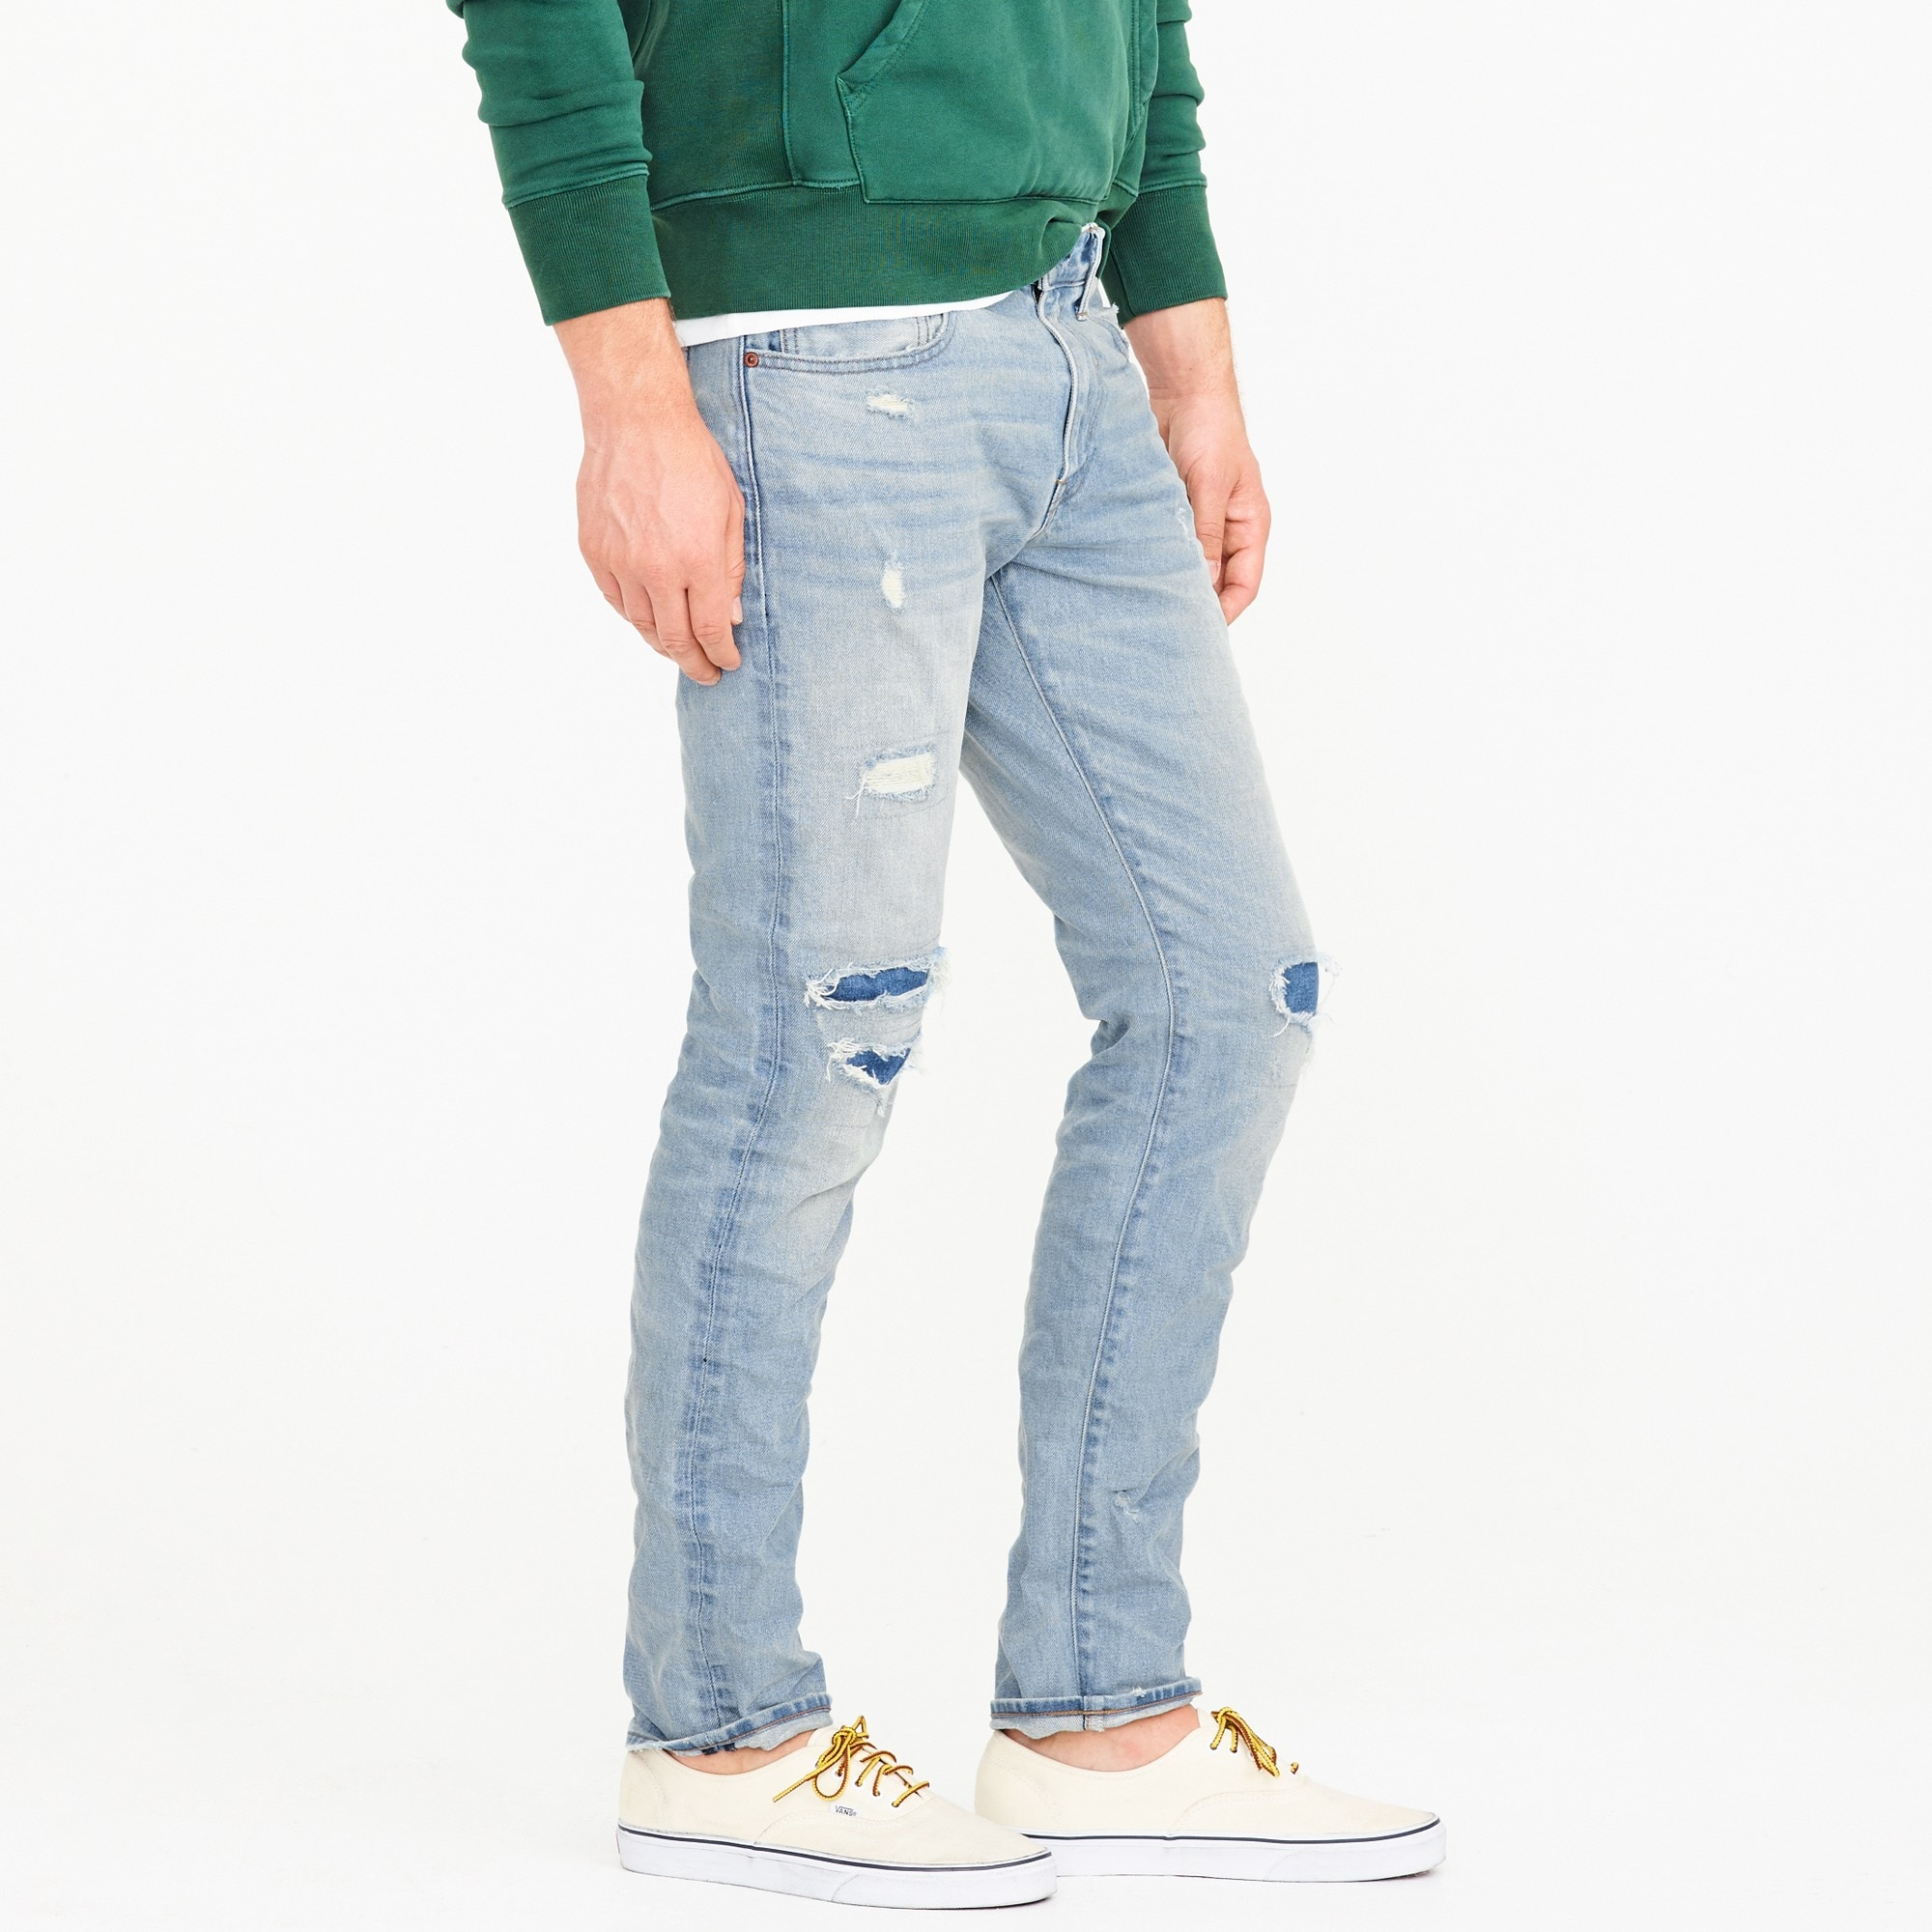 484 Slim-fit stretch jean in distressed patchwork